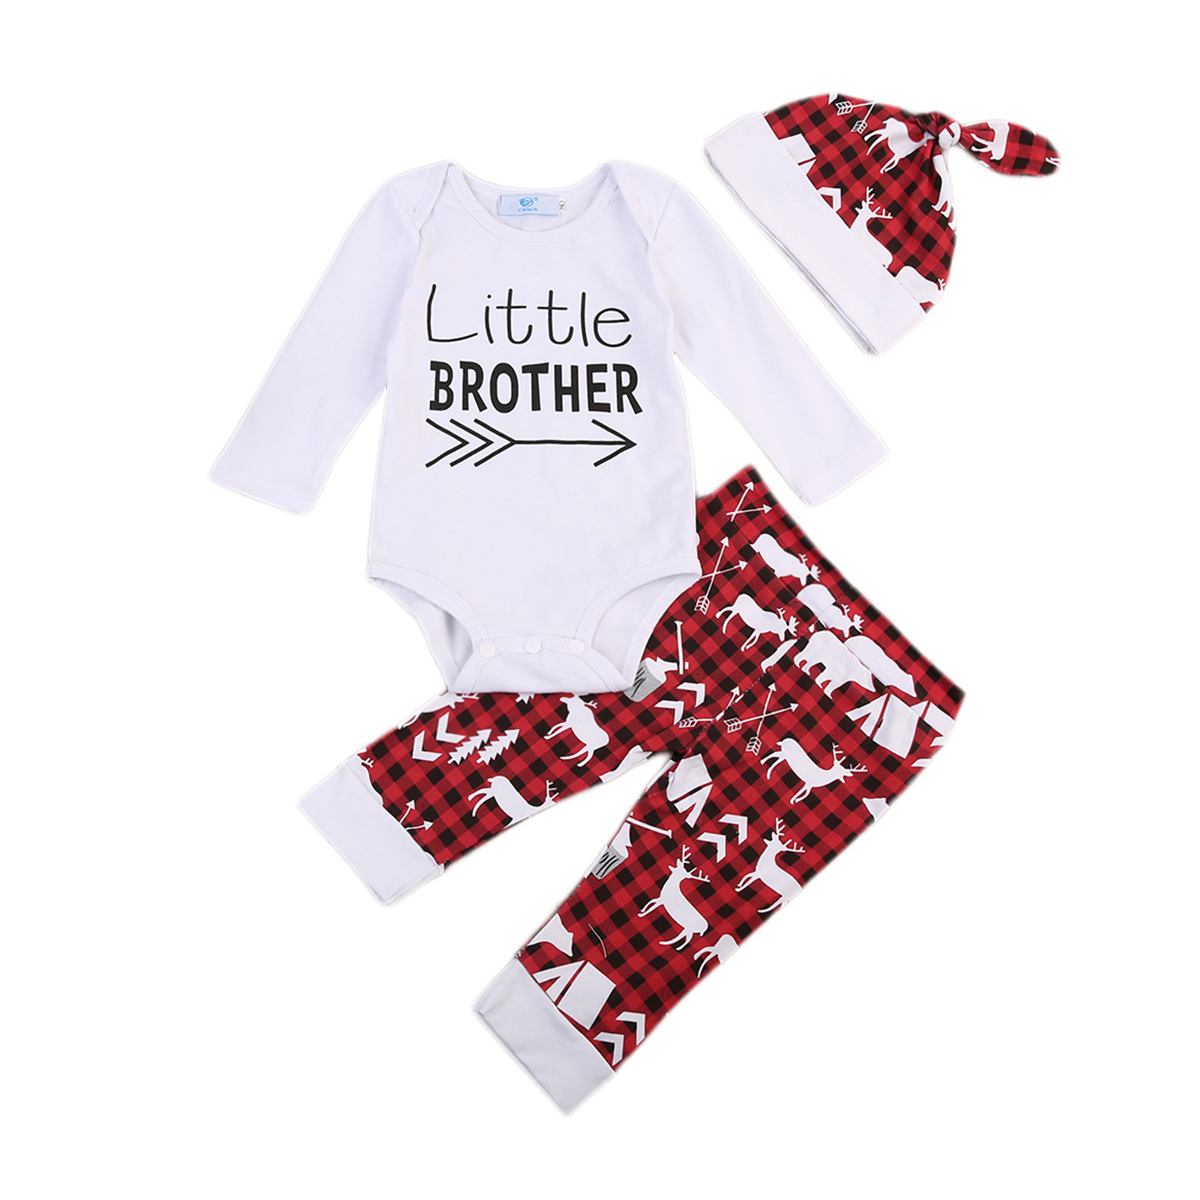 Baby Boy Outfits Clothes Newborn Baby Little Brother Letter Print Romper Cute Deer Pants Hat 3pcs Set